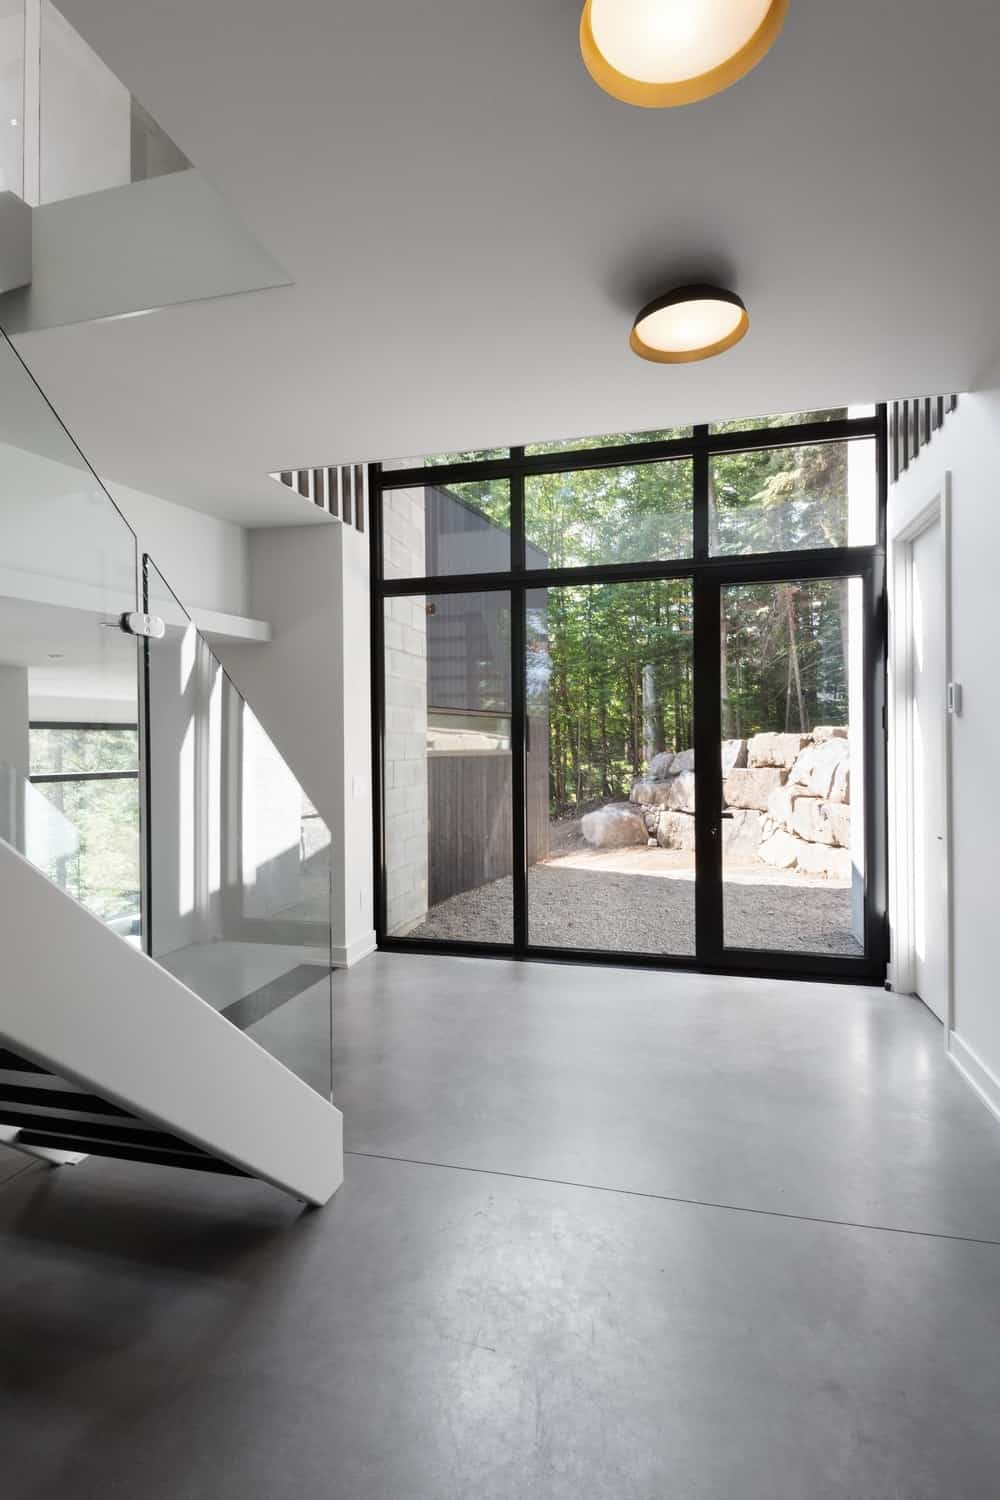 Entryway of the house featuring glass door and white walls along with a staircase. Photo credit: Steve Montpetit